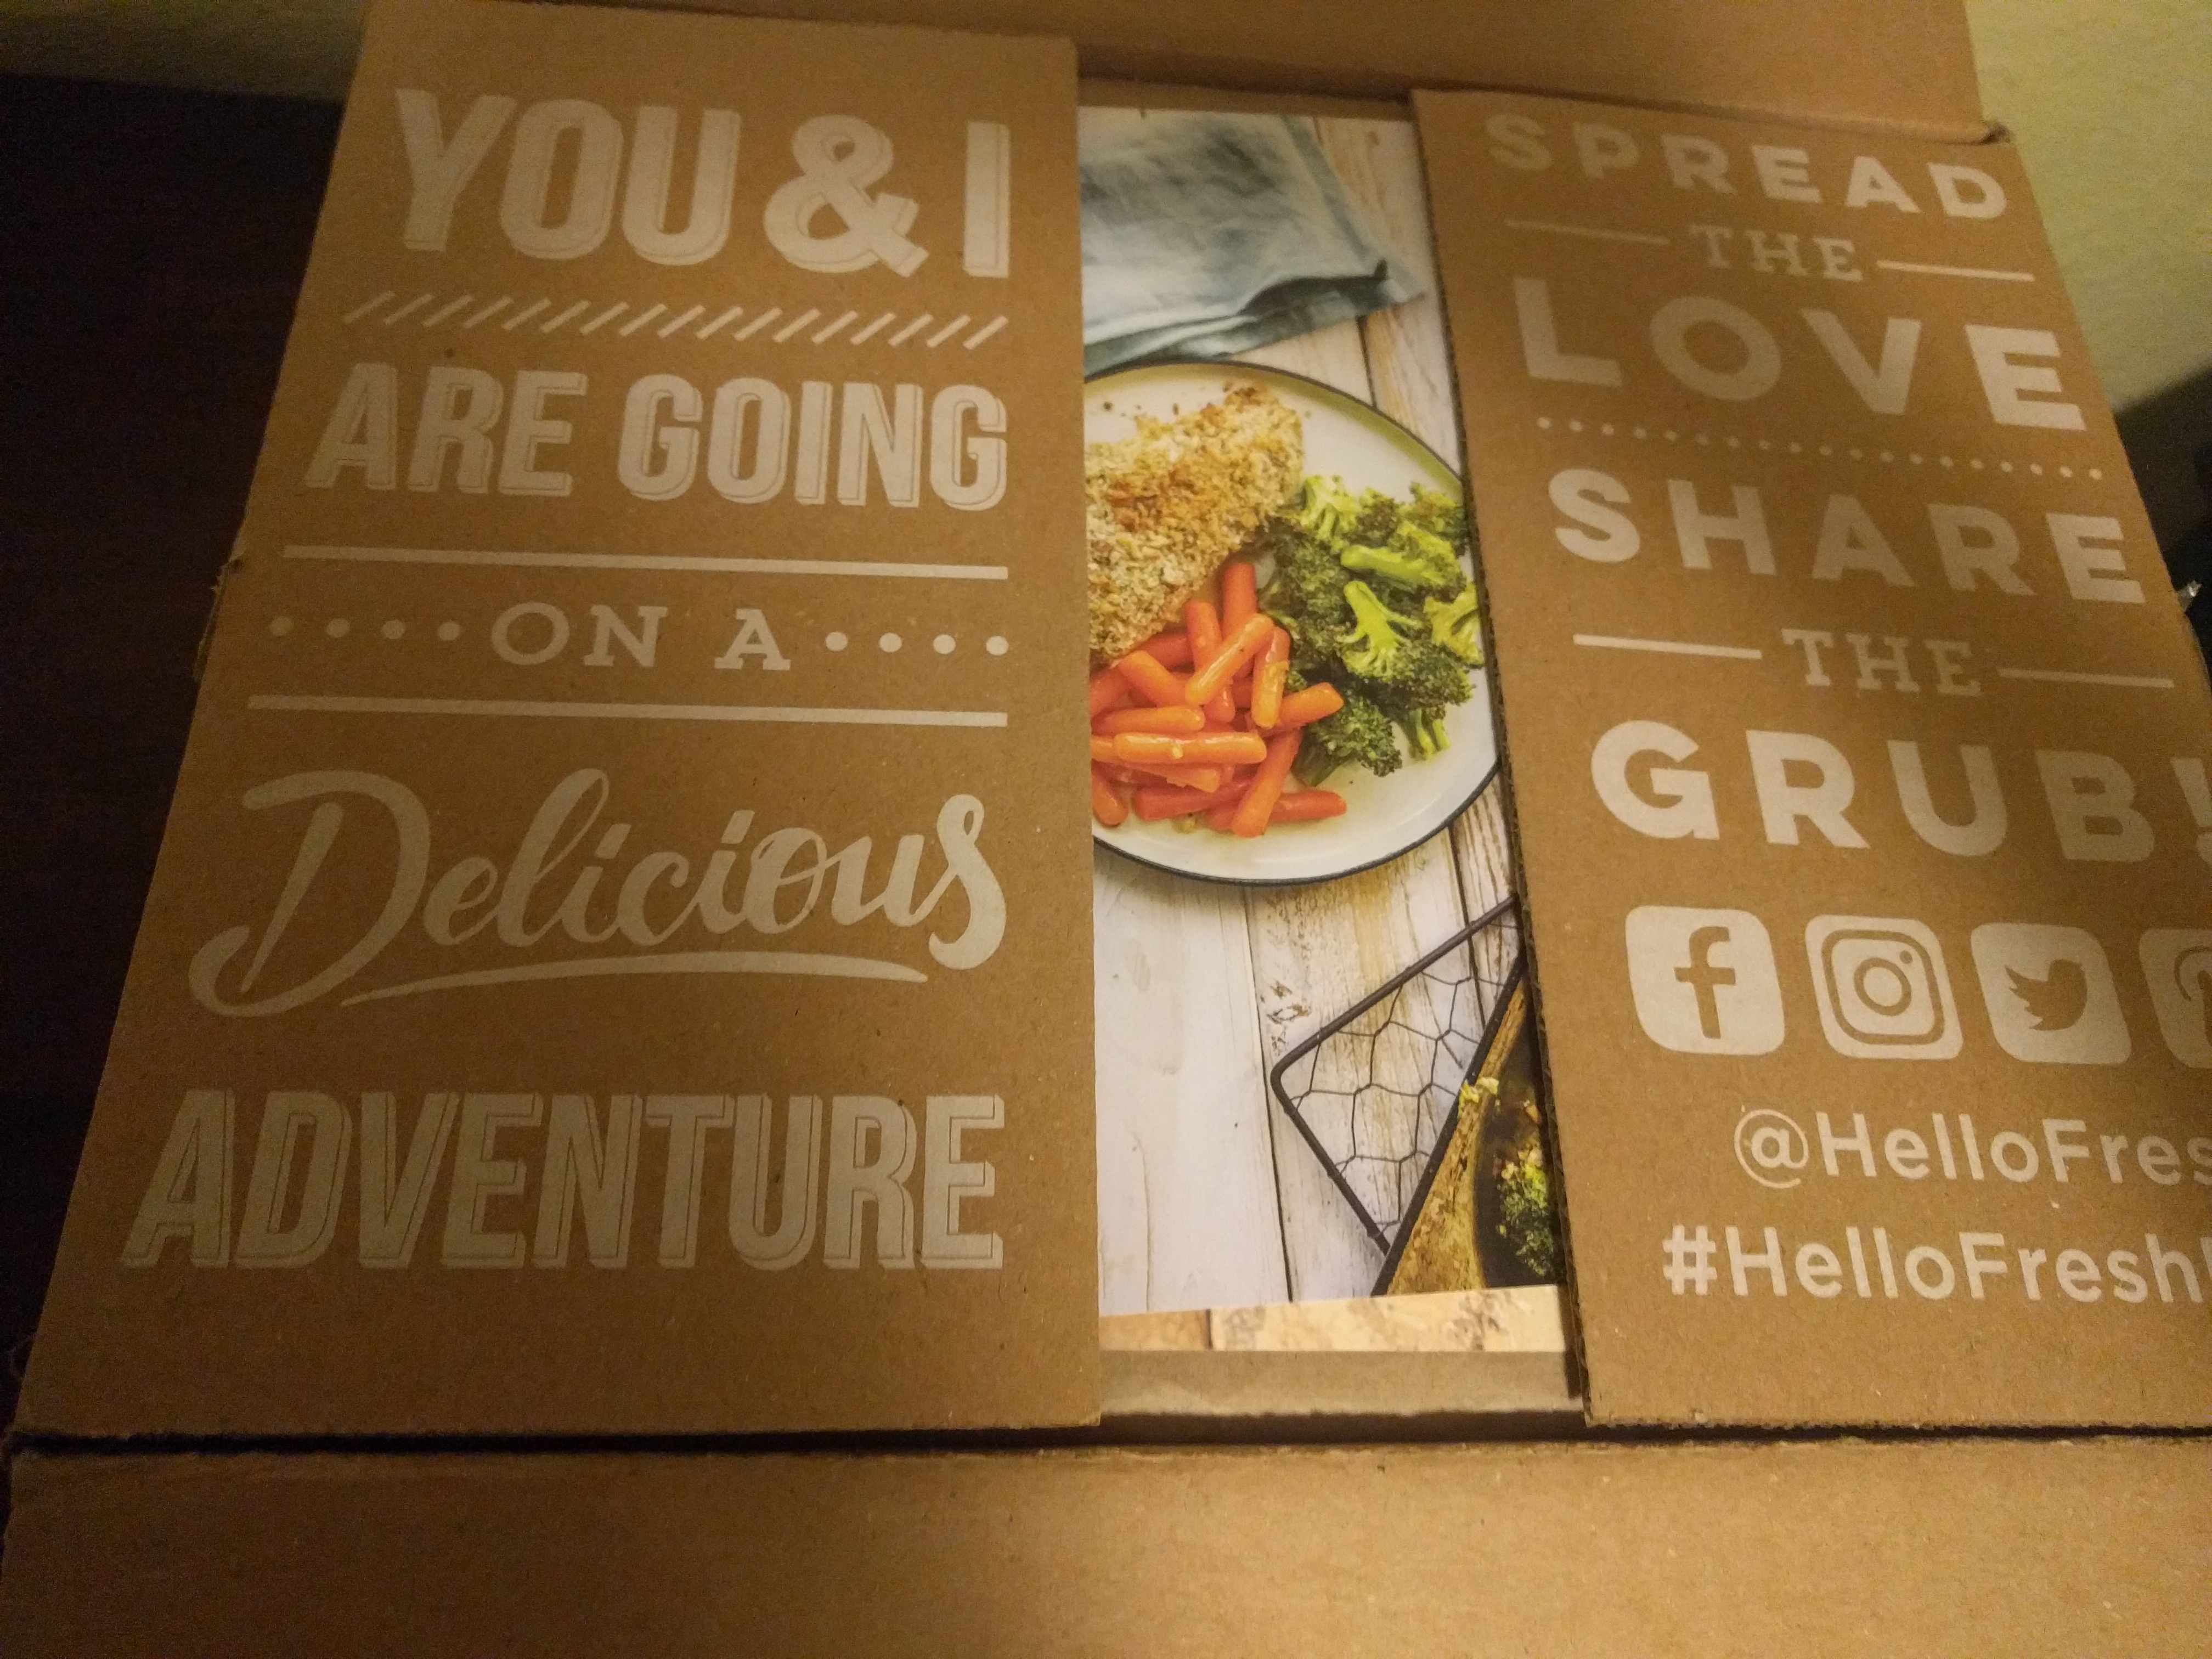 Hellofresh What Is A New Client